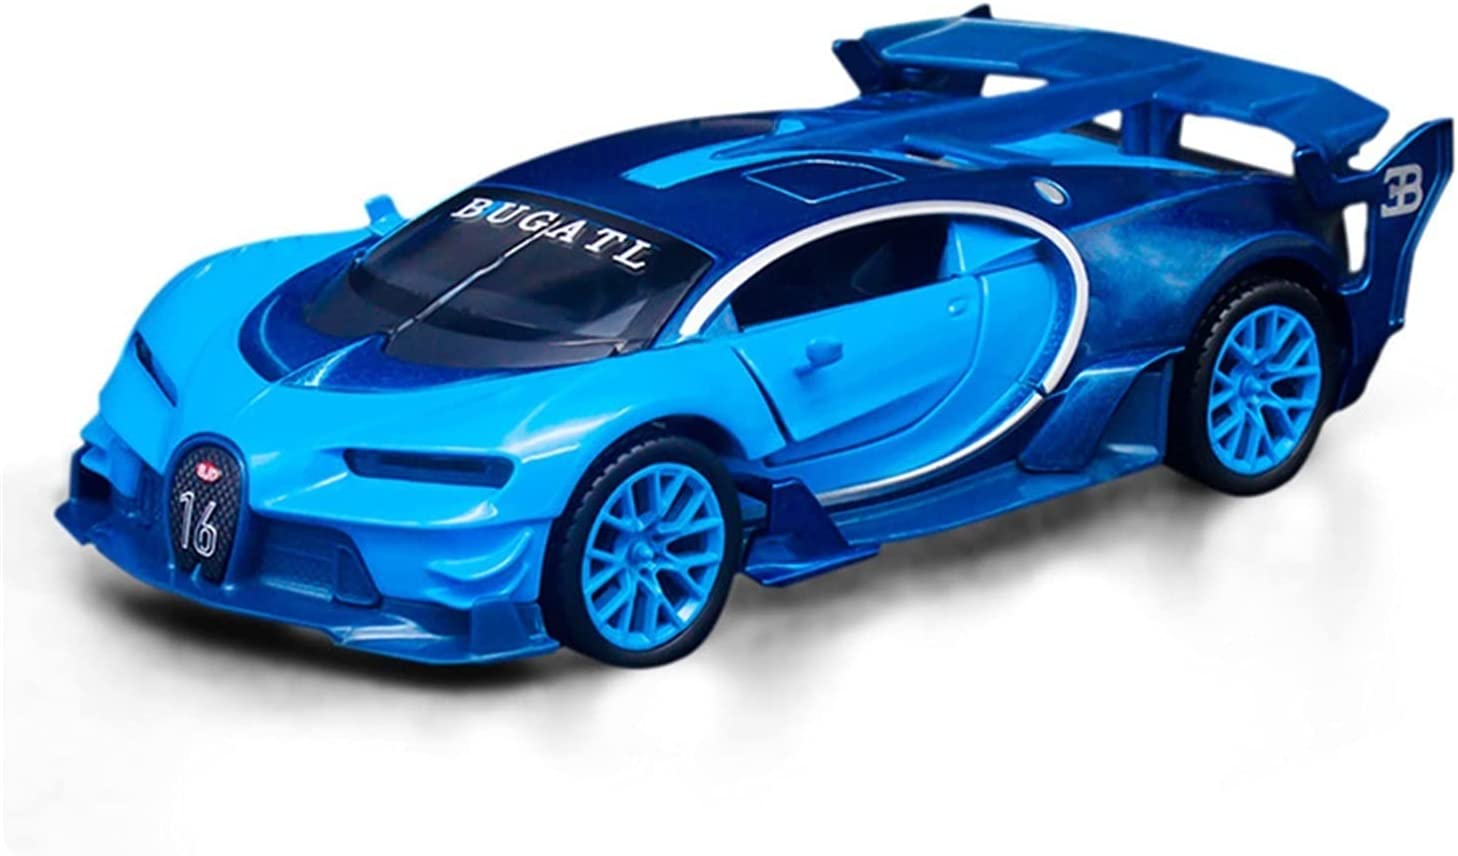 MAQINA for Bugatti GT 1:32 Alloy Die-Casting Pull Fort Worth Mall Sport Quantity limited Back Car